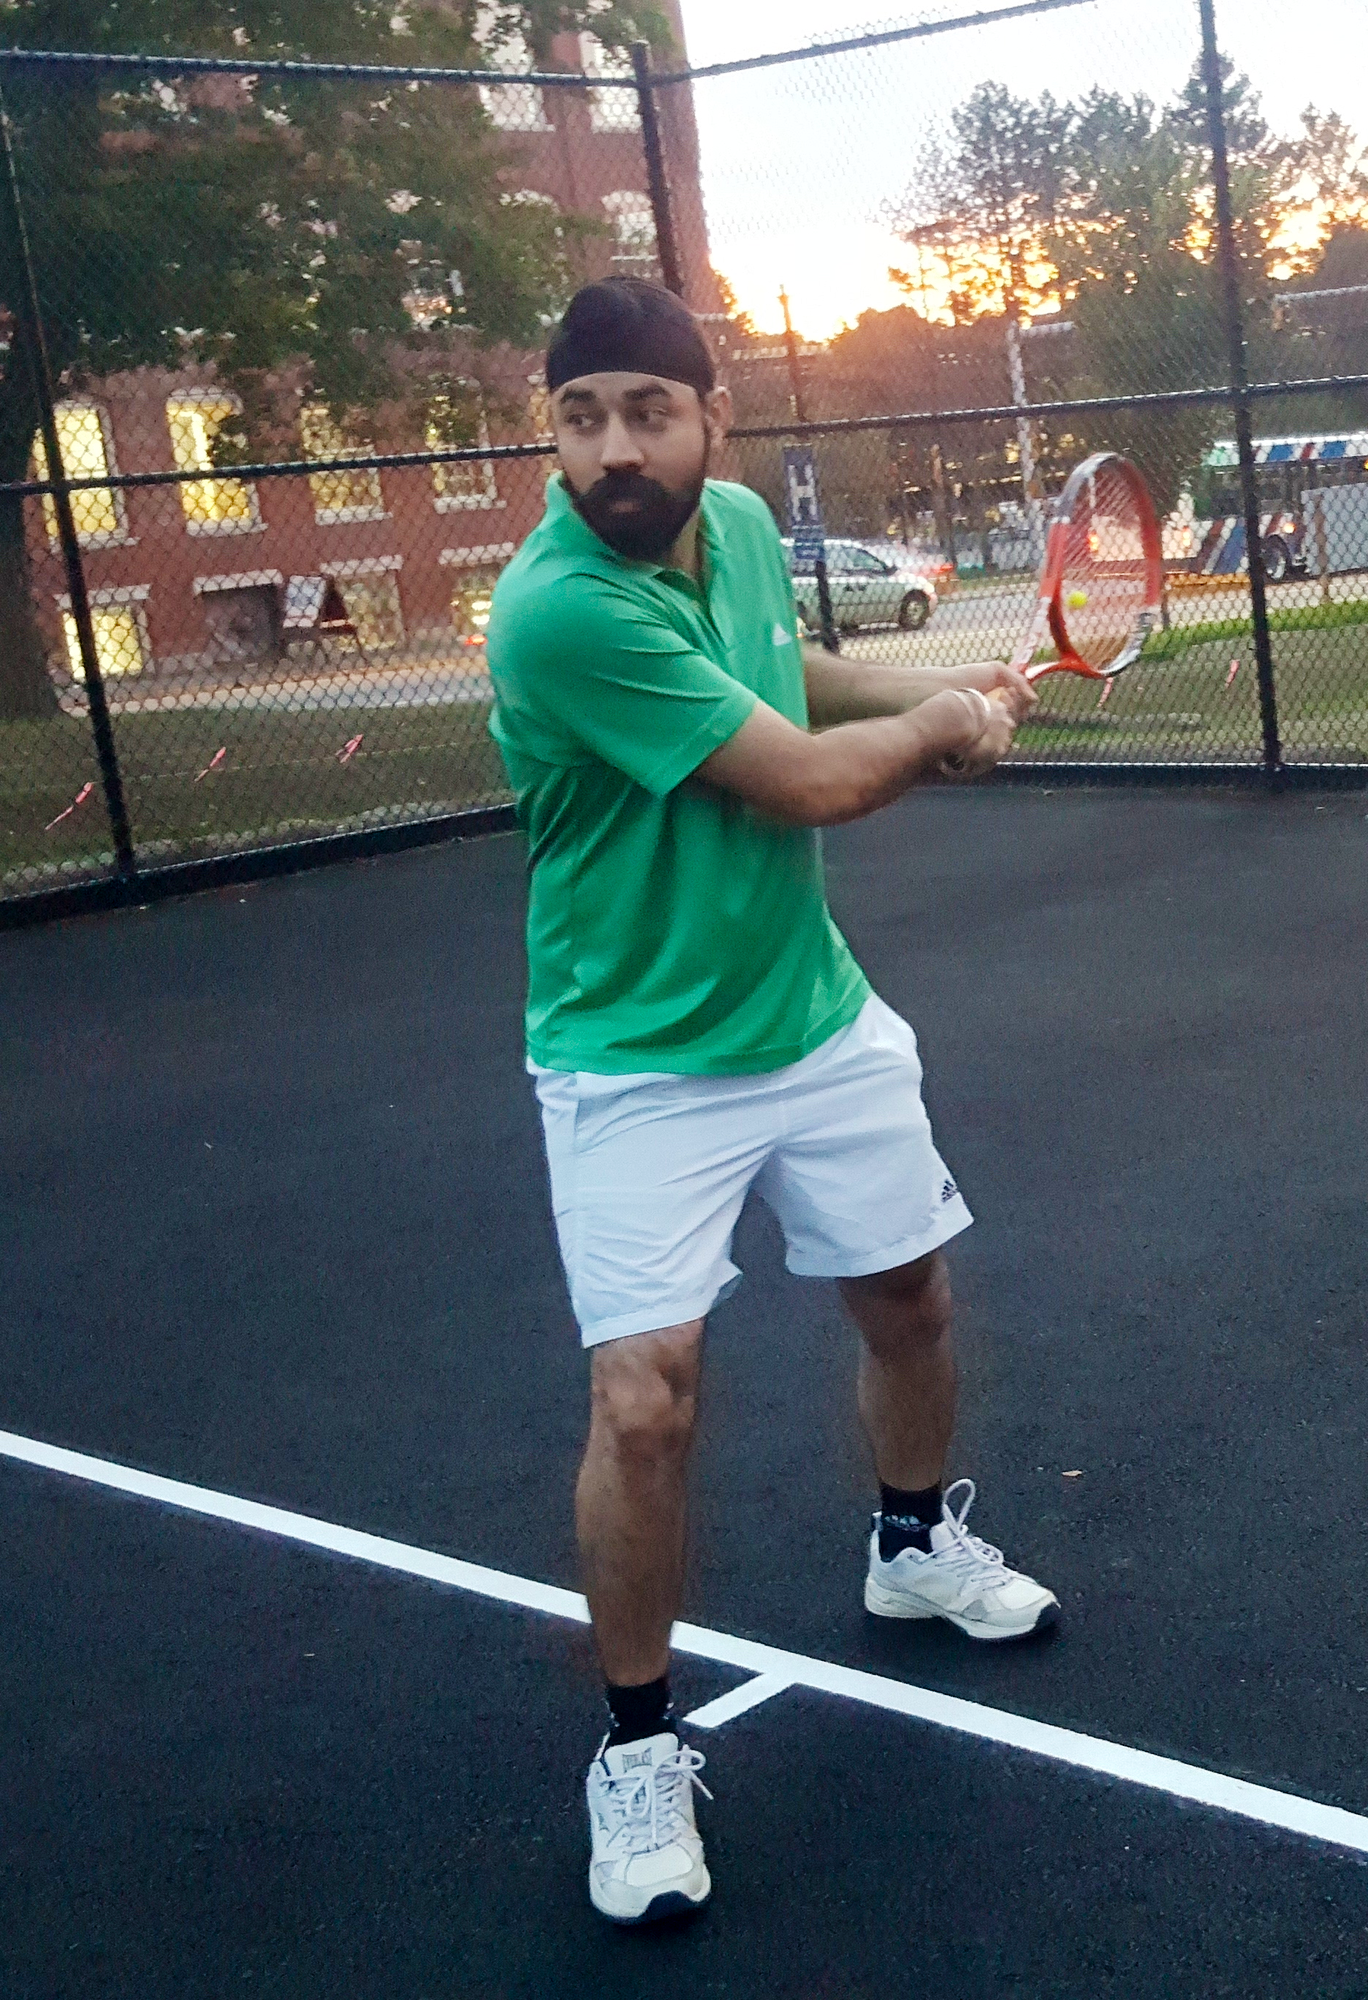 Baldeep G. teaches tennis lessons in Lowell, MA